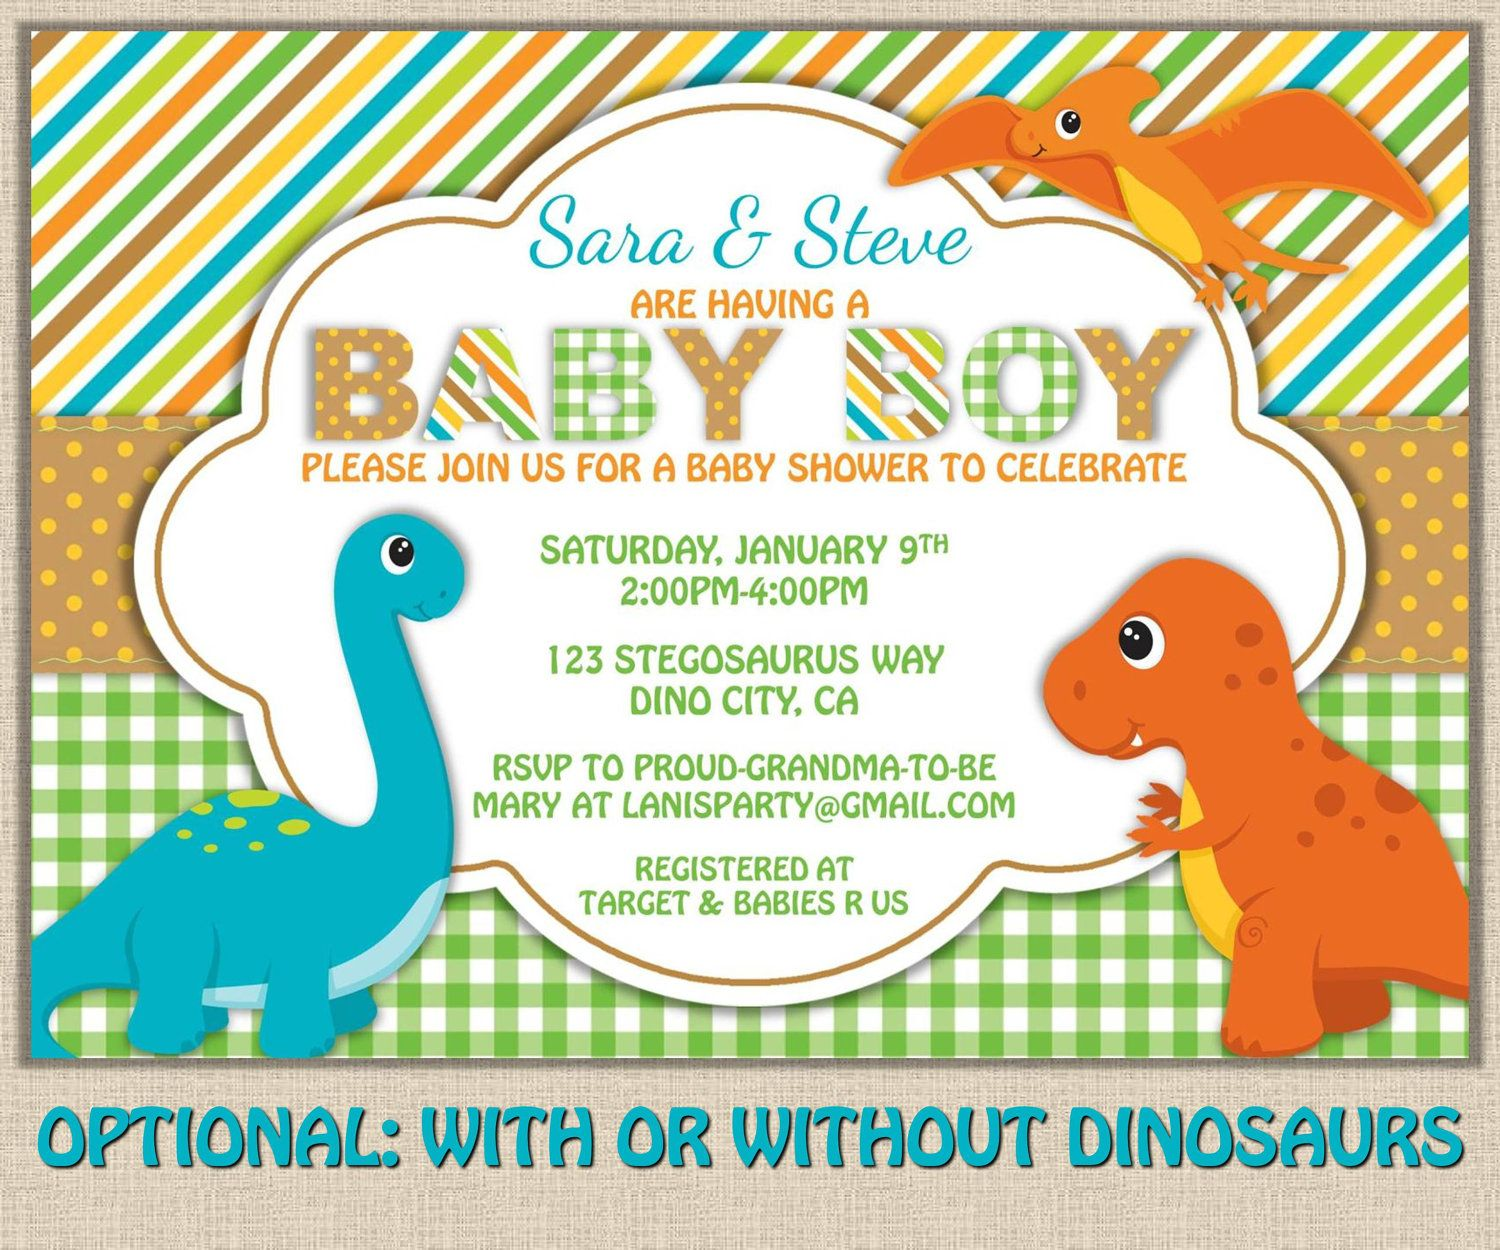 photo relating to Free Printable Dinosaur Baby Shower Invitations known as Cost-free Printable Dinosaur Kid Shower Invitation My Kaden in just